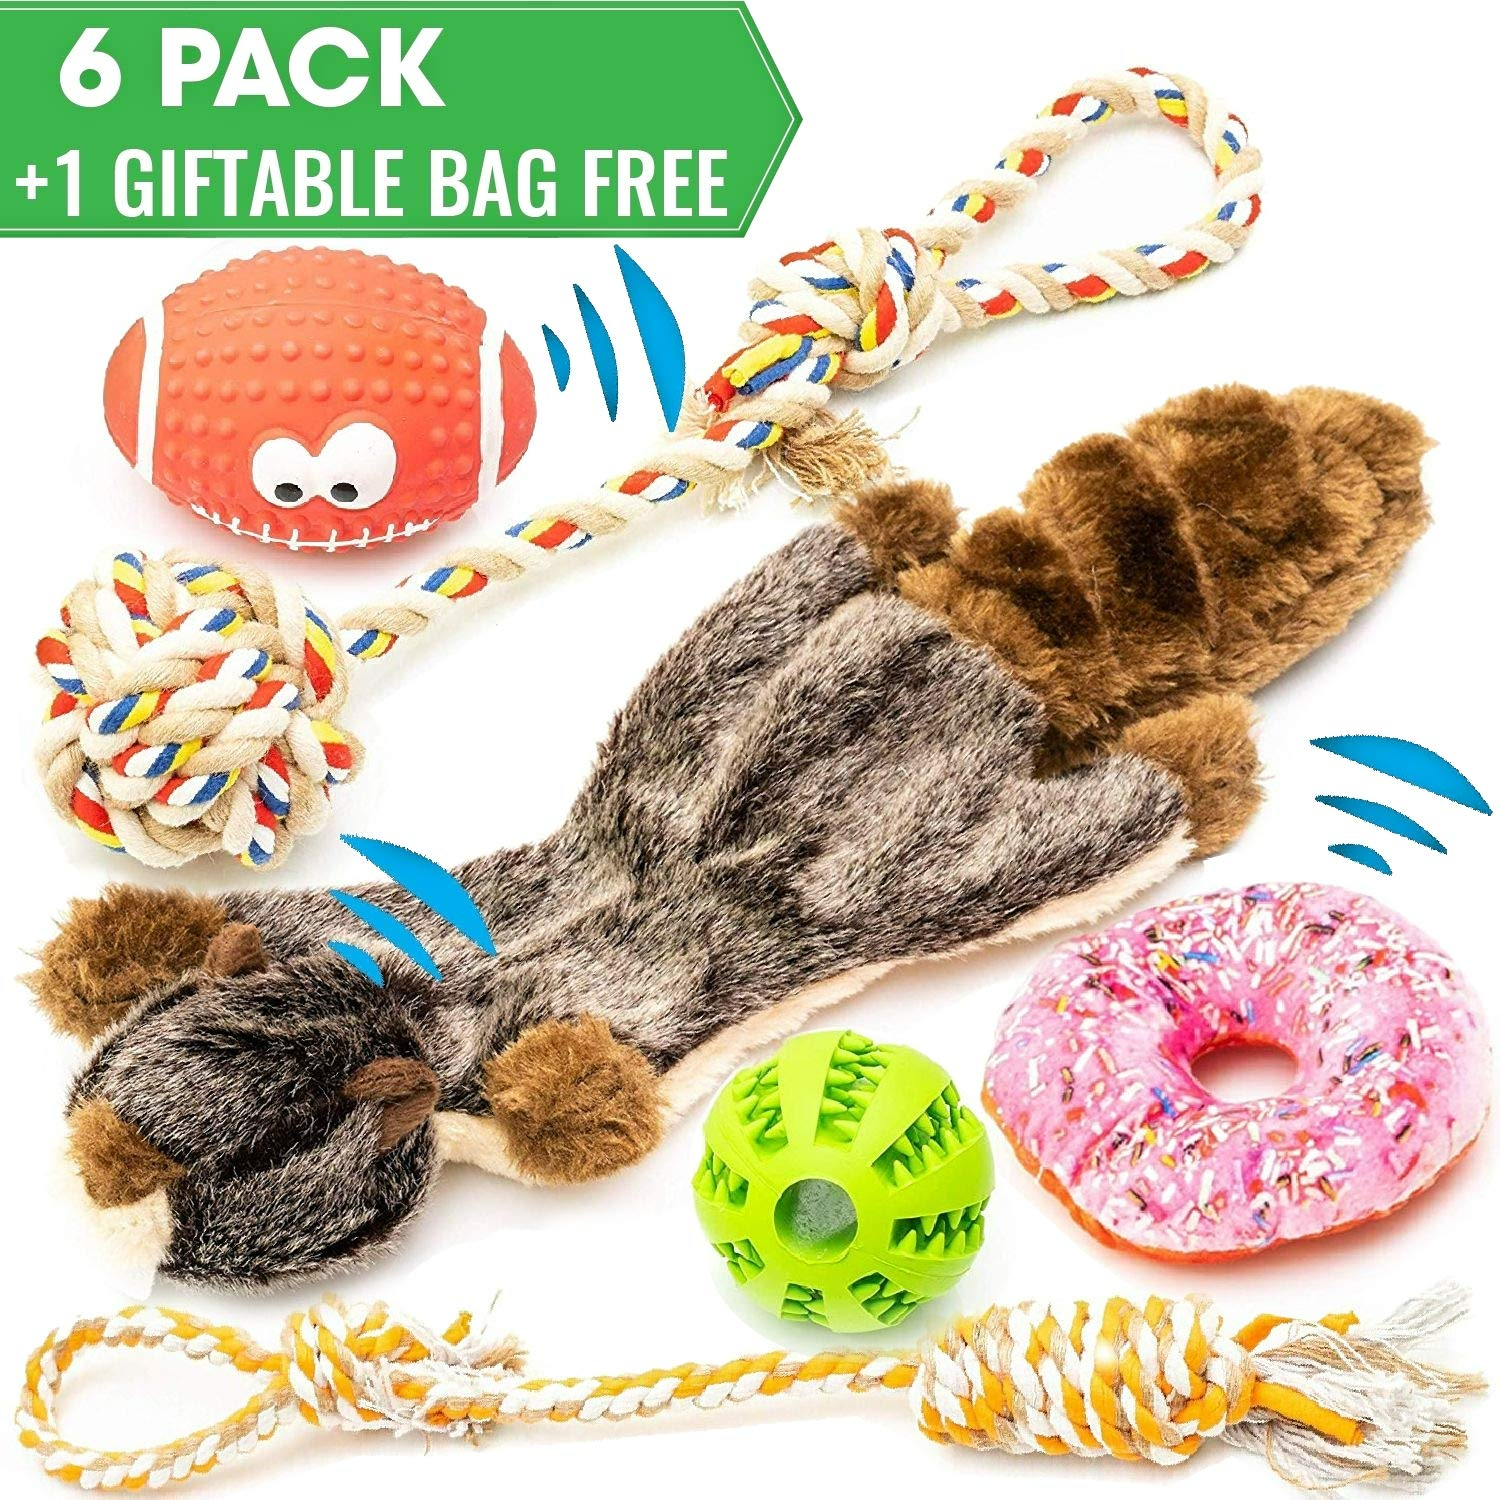 JuJuNe pets, Small and Medium Dog Toys Set 6 Pack, Rubber Ball, Nontoxic Latex Rugby Dog Toy, Durable & Natural Cotton Tug Ropes, Plush Squeaky Donut, Plush Marmot Squeak Chew Toy, Dogs Toys by JuJuNe pets